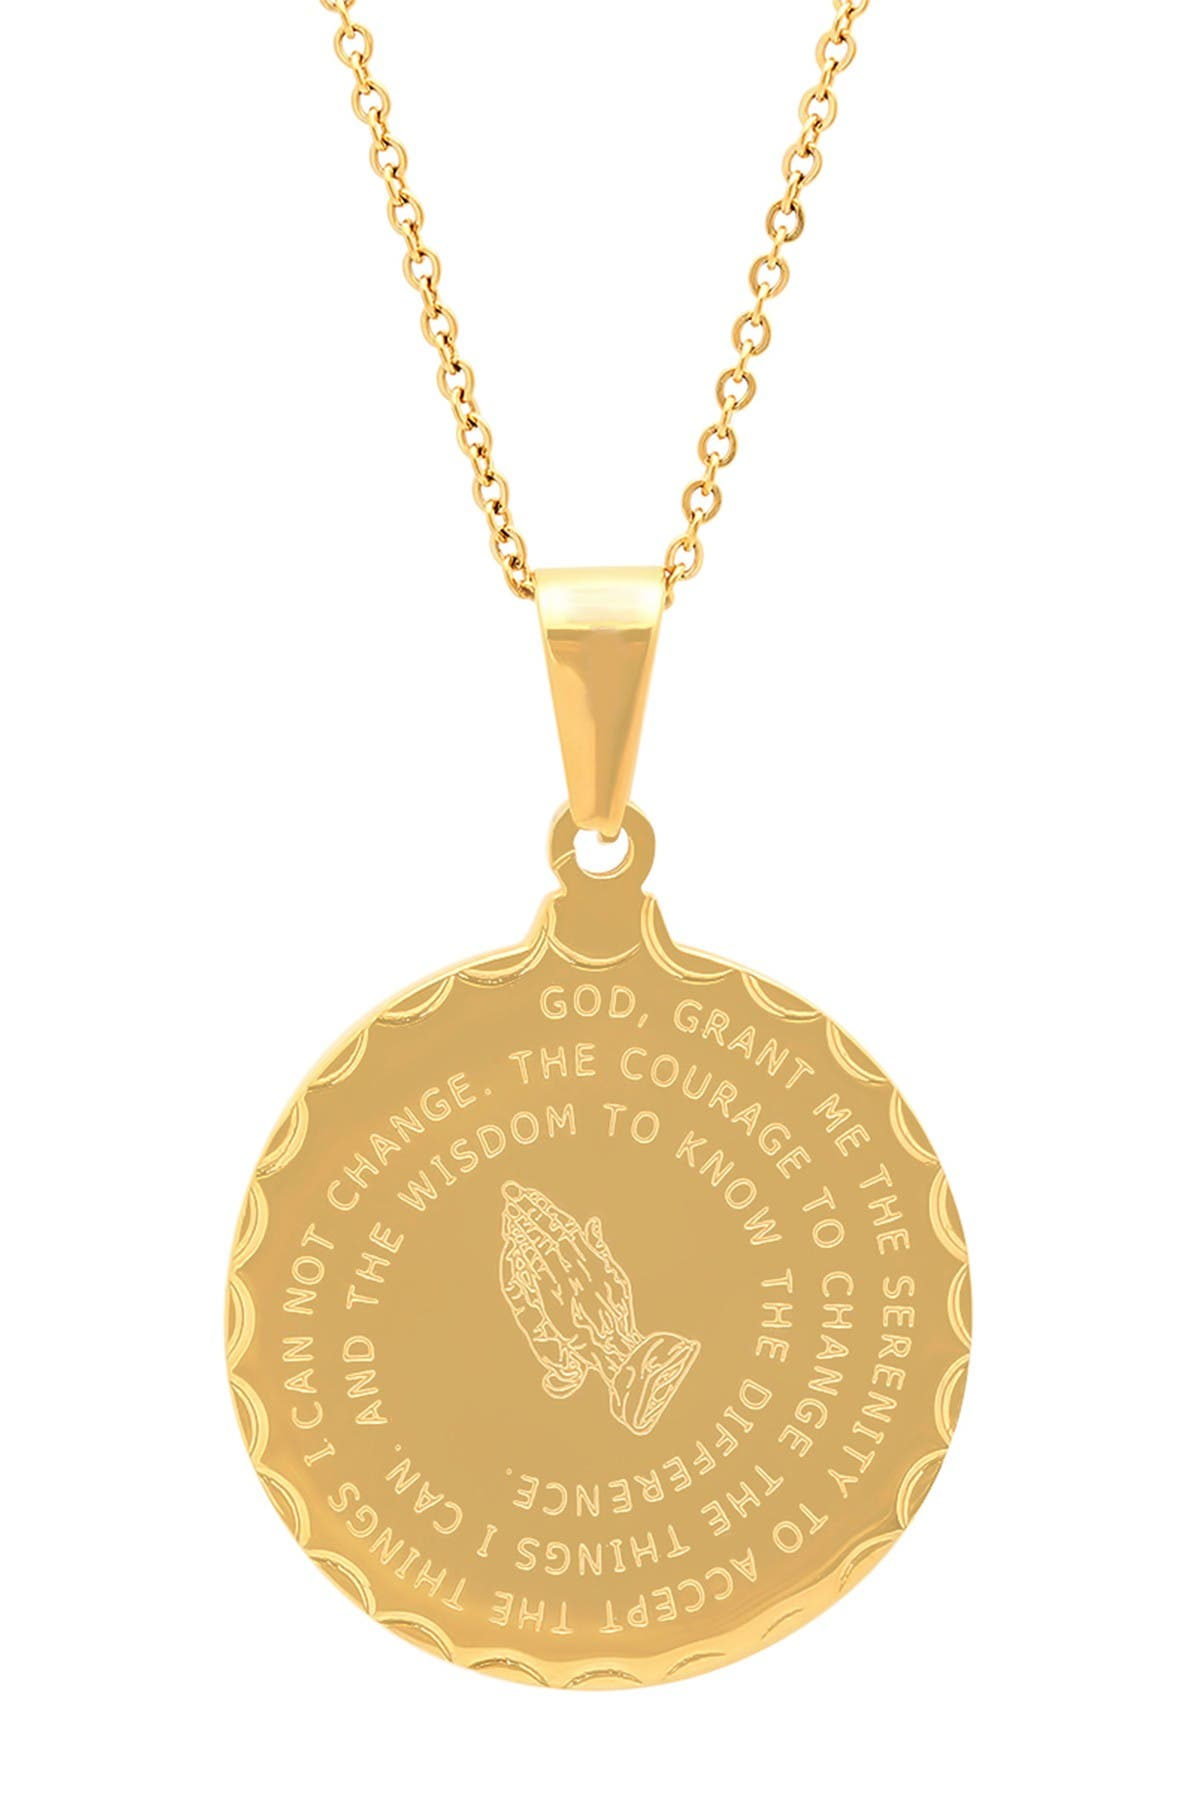 Image of HMY Jewelry Lord's Prayer & Serenity Prayer Necklace